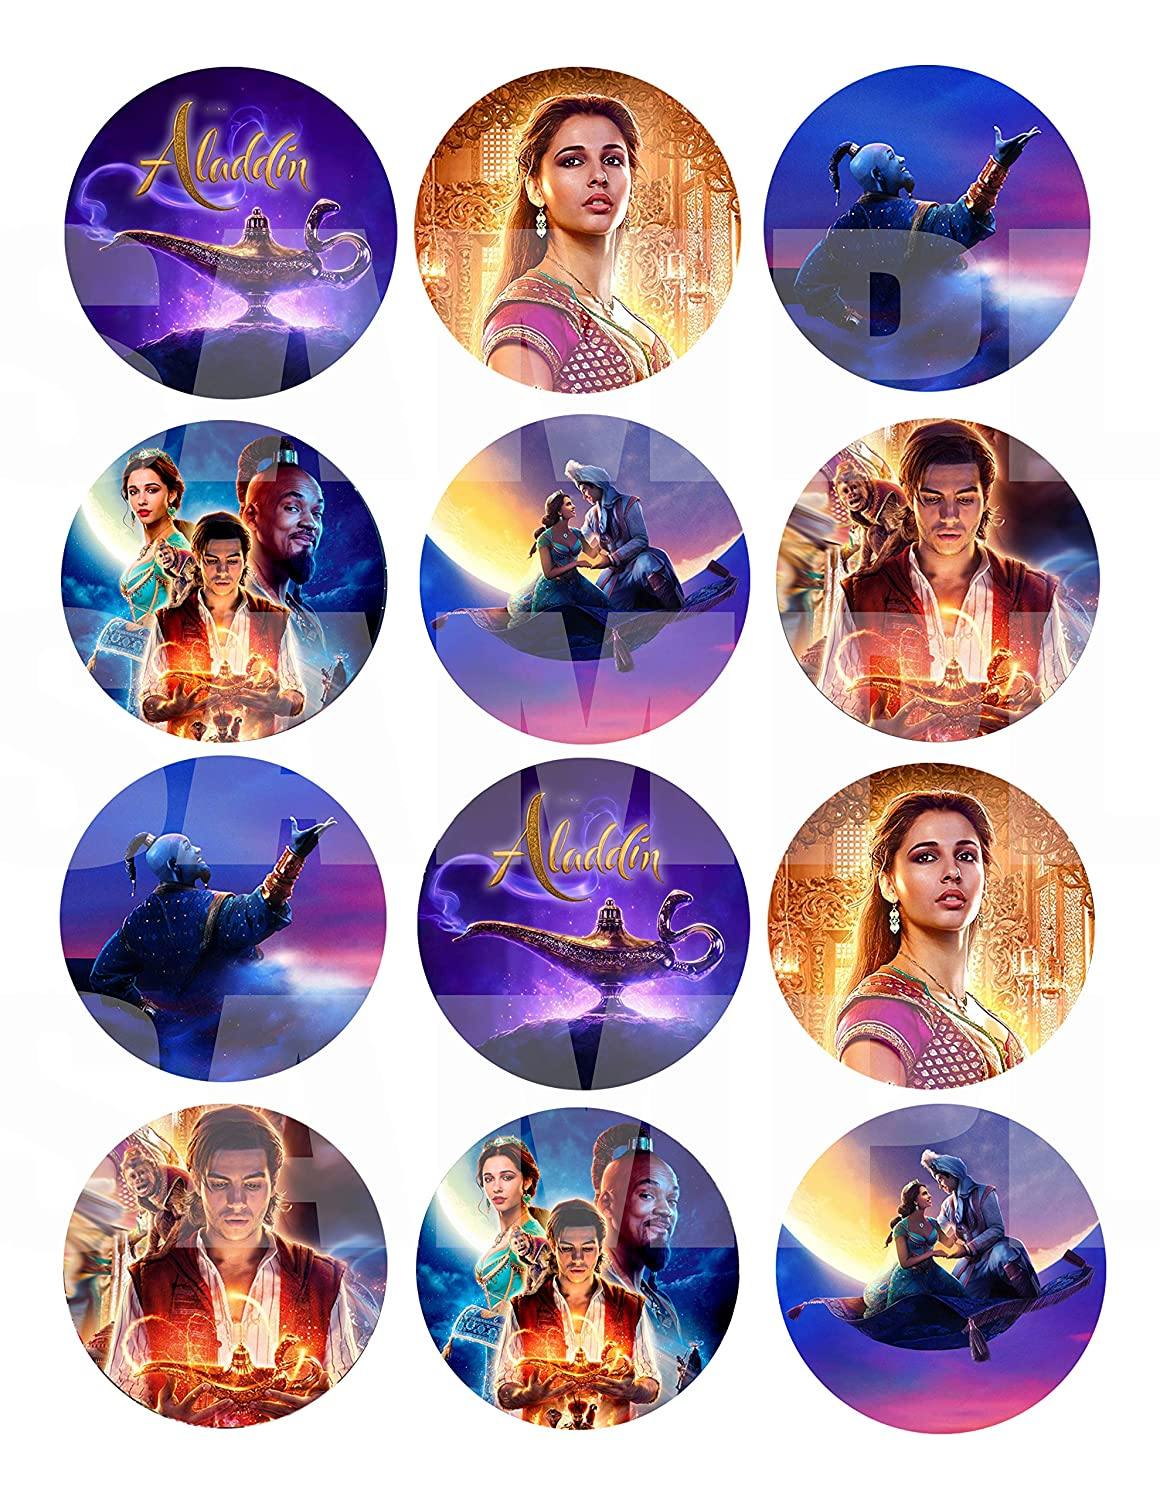 """Cards Large 2.5/"""" Round Circle DIY Stickers to Place onto Party Favor Bags Aladdin Movie Stickers Boxes or Containers -12 pcs Alladin Princess Jasmine Jafar Genie Magic Lamp"""